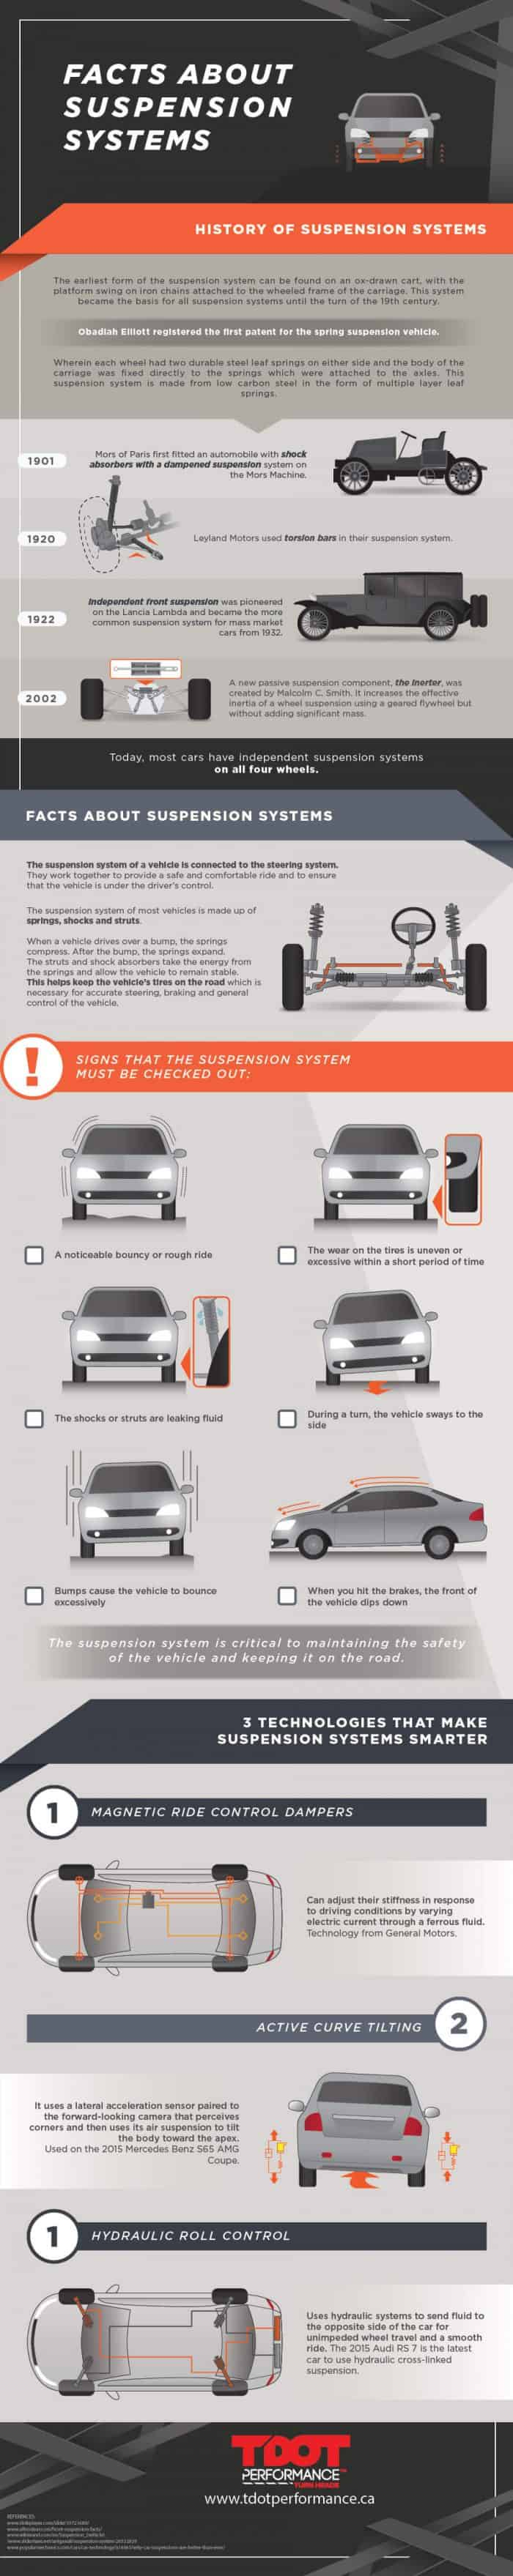 infographic about car suspension systems and why regular maintenance is important